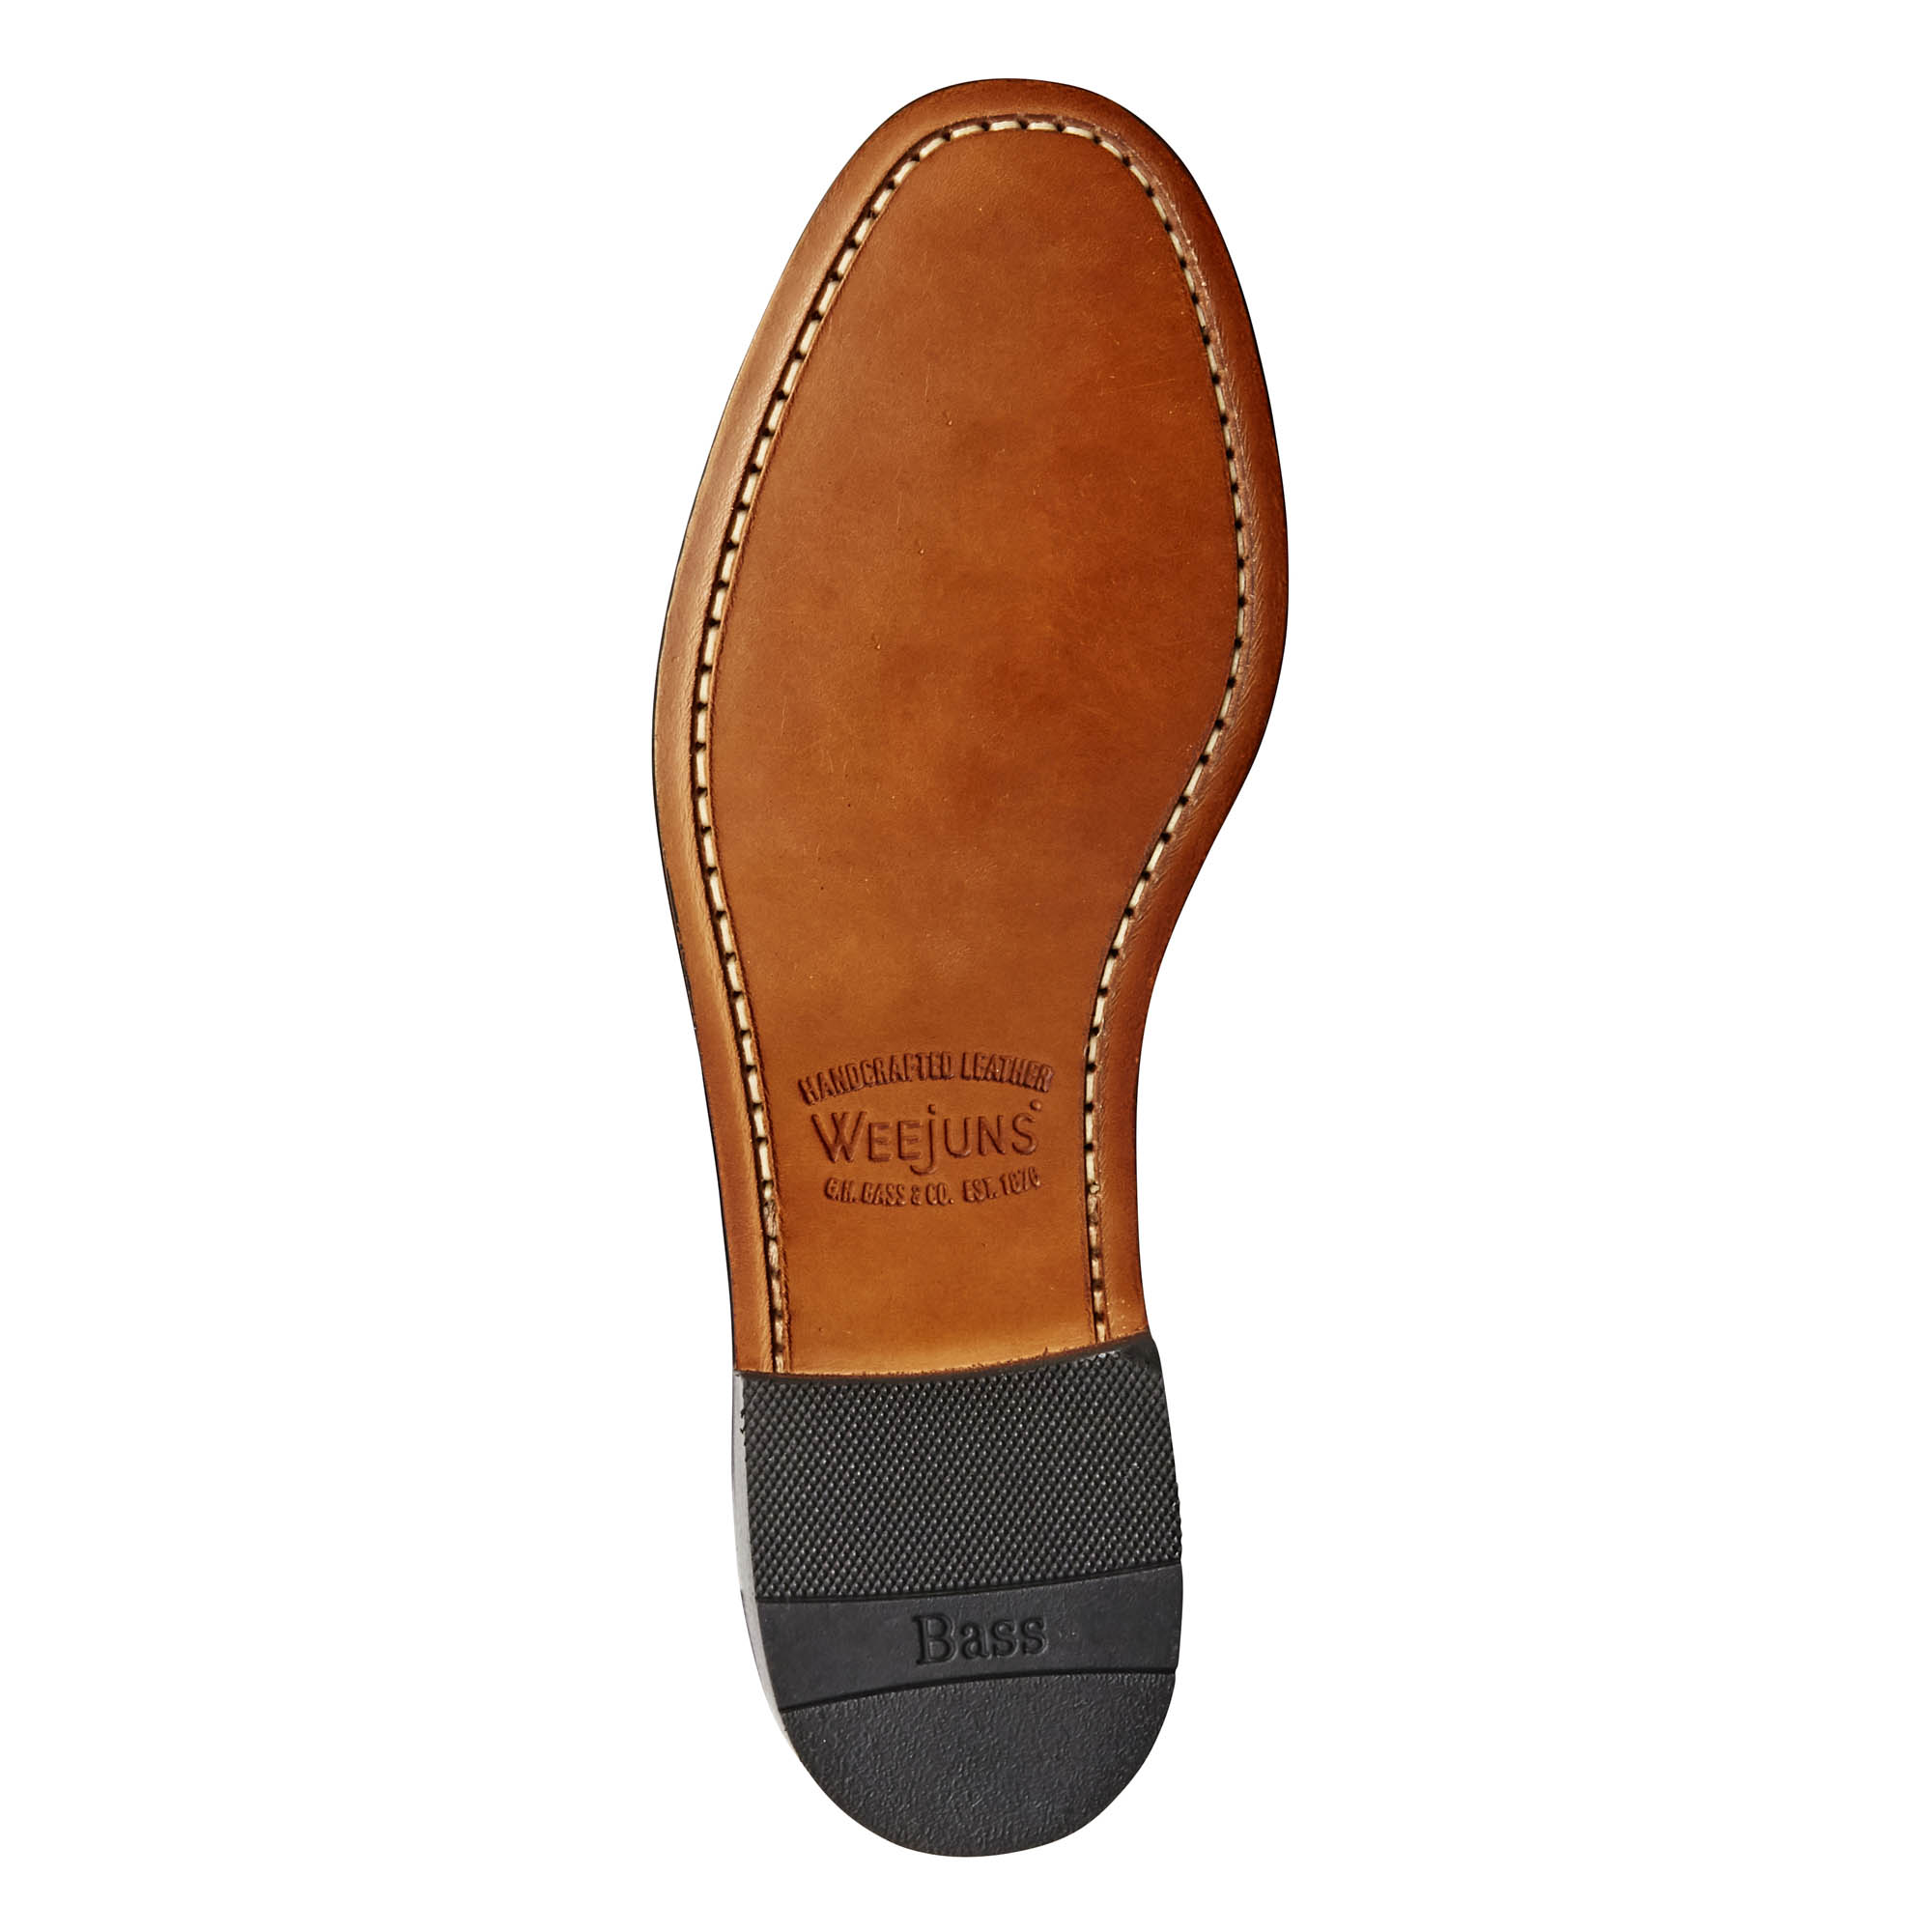 11011 / MID BROWN (LEATHER SOLE)